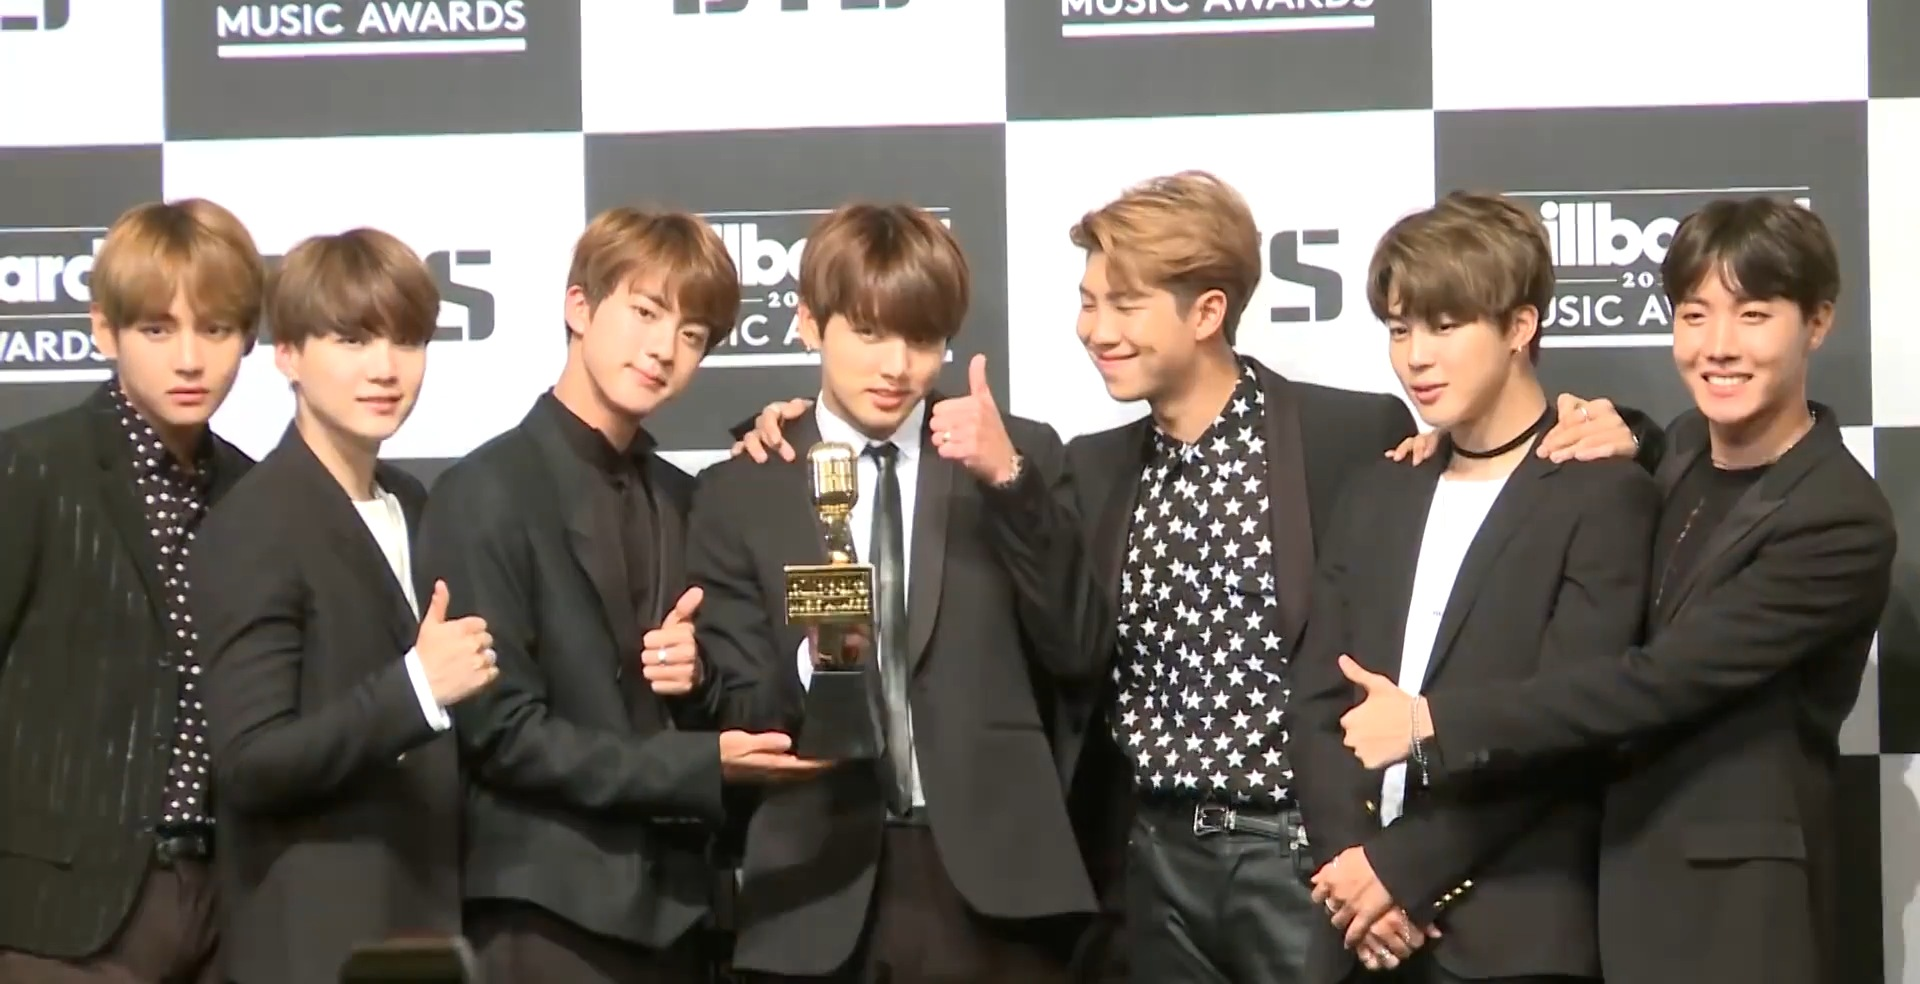 Free download high resolution image - free image free photo free stock image public domain picture -BTS at their press conference in Seoul, South Korea